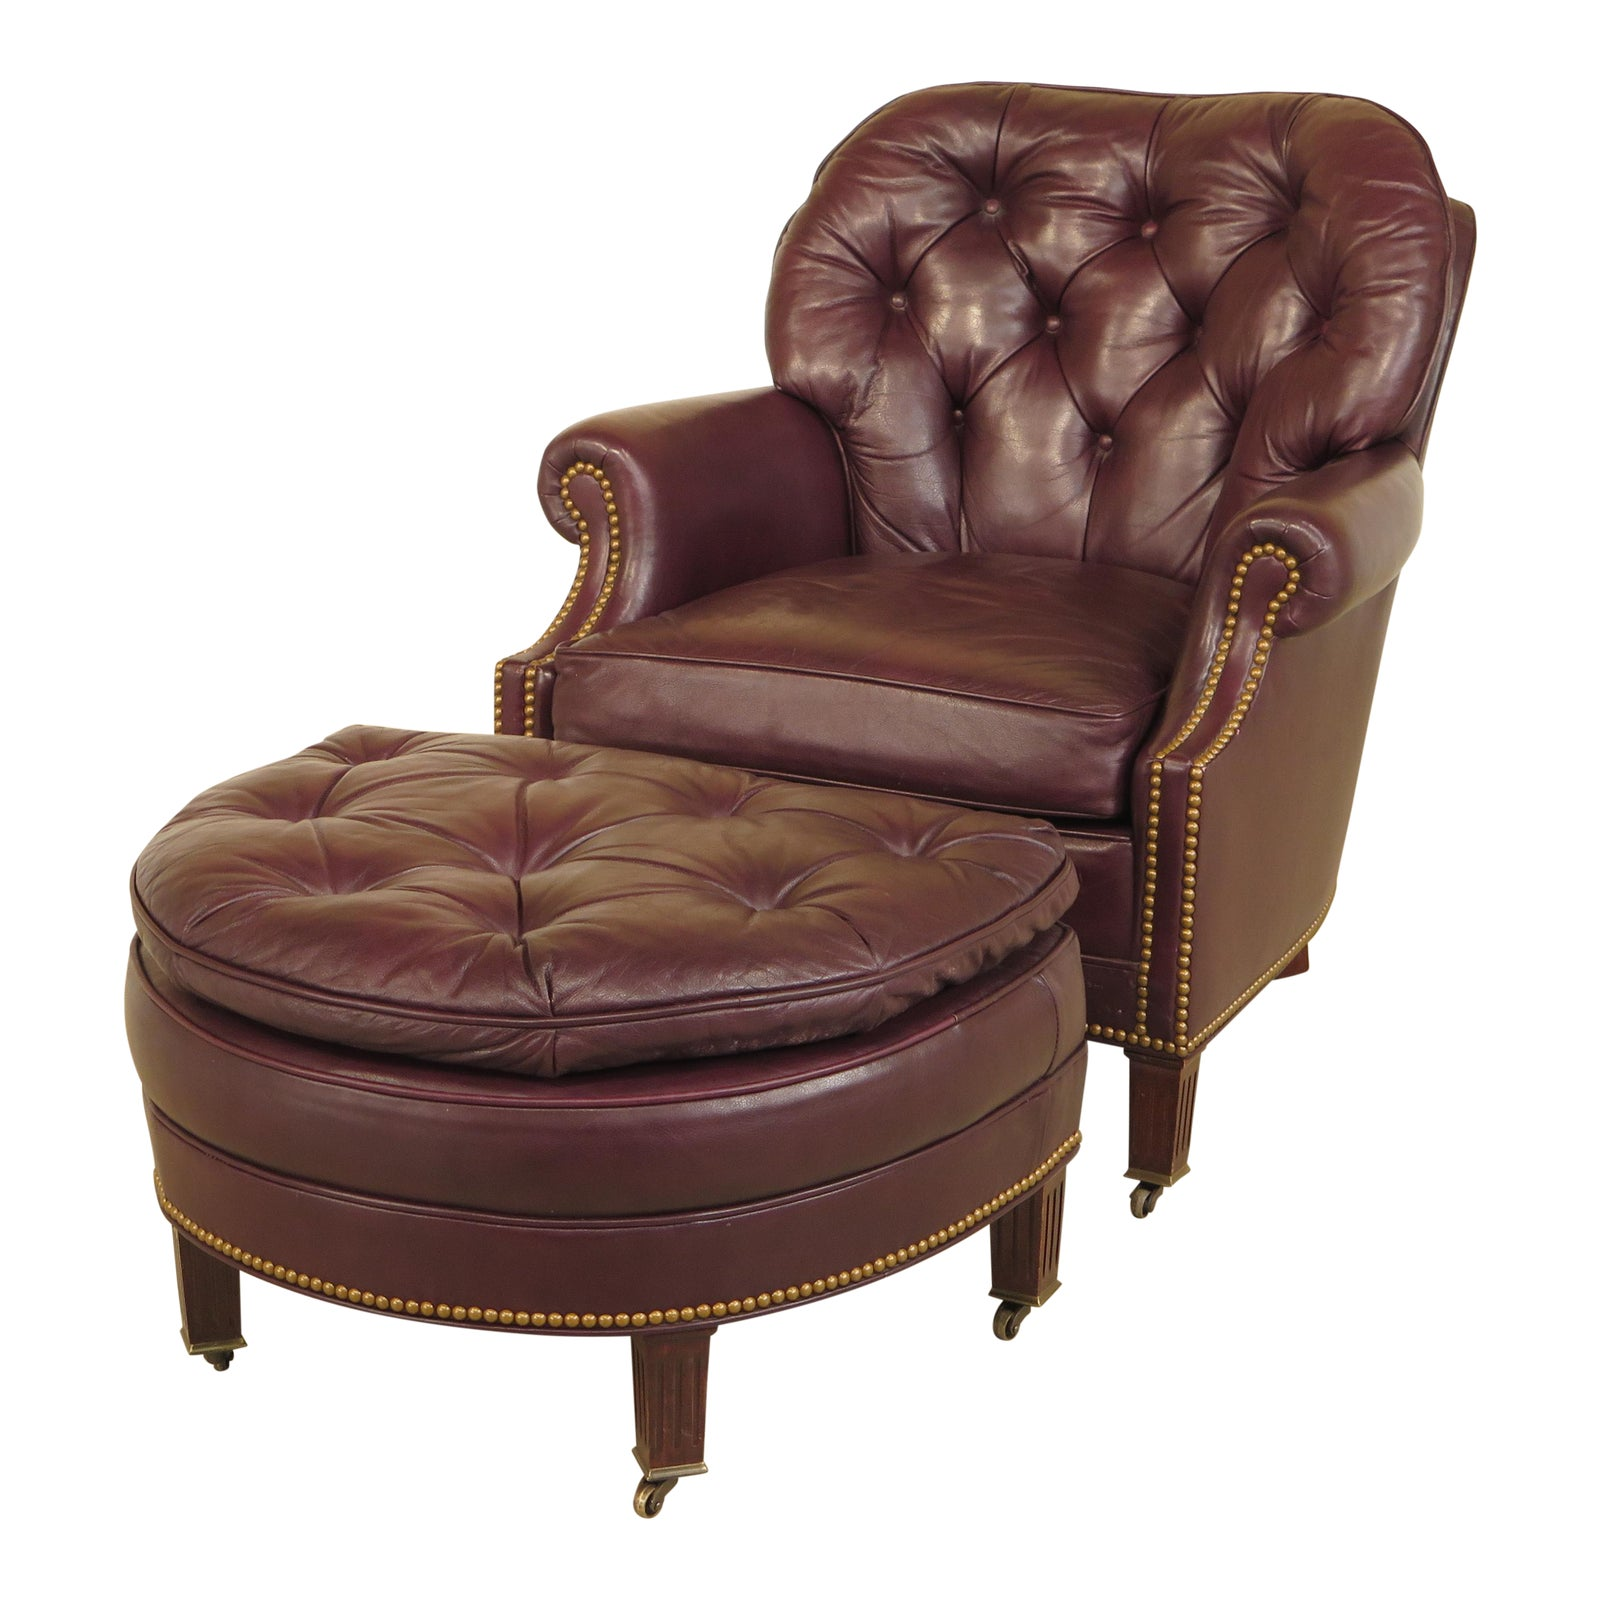 Hancock Amp Moore Burgundy Leather Club Chair Amp Ottoman A